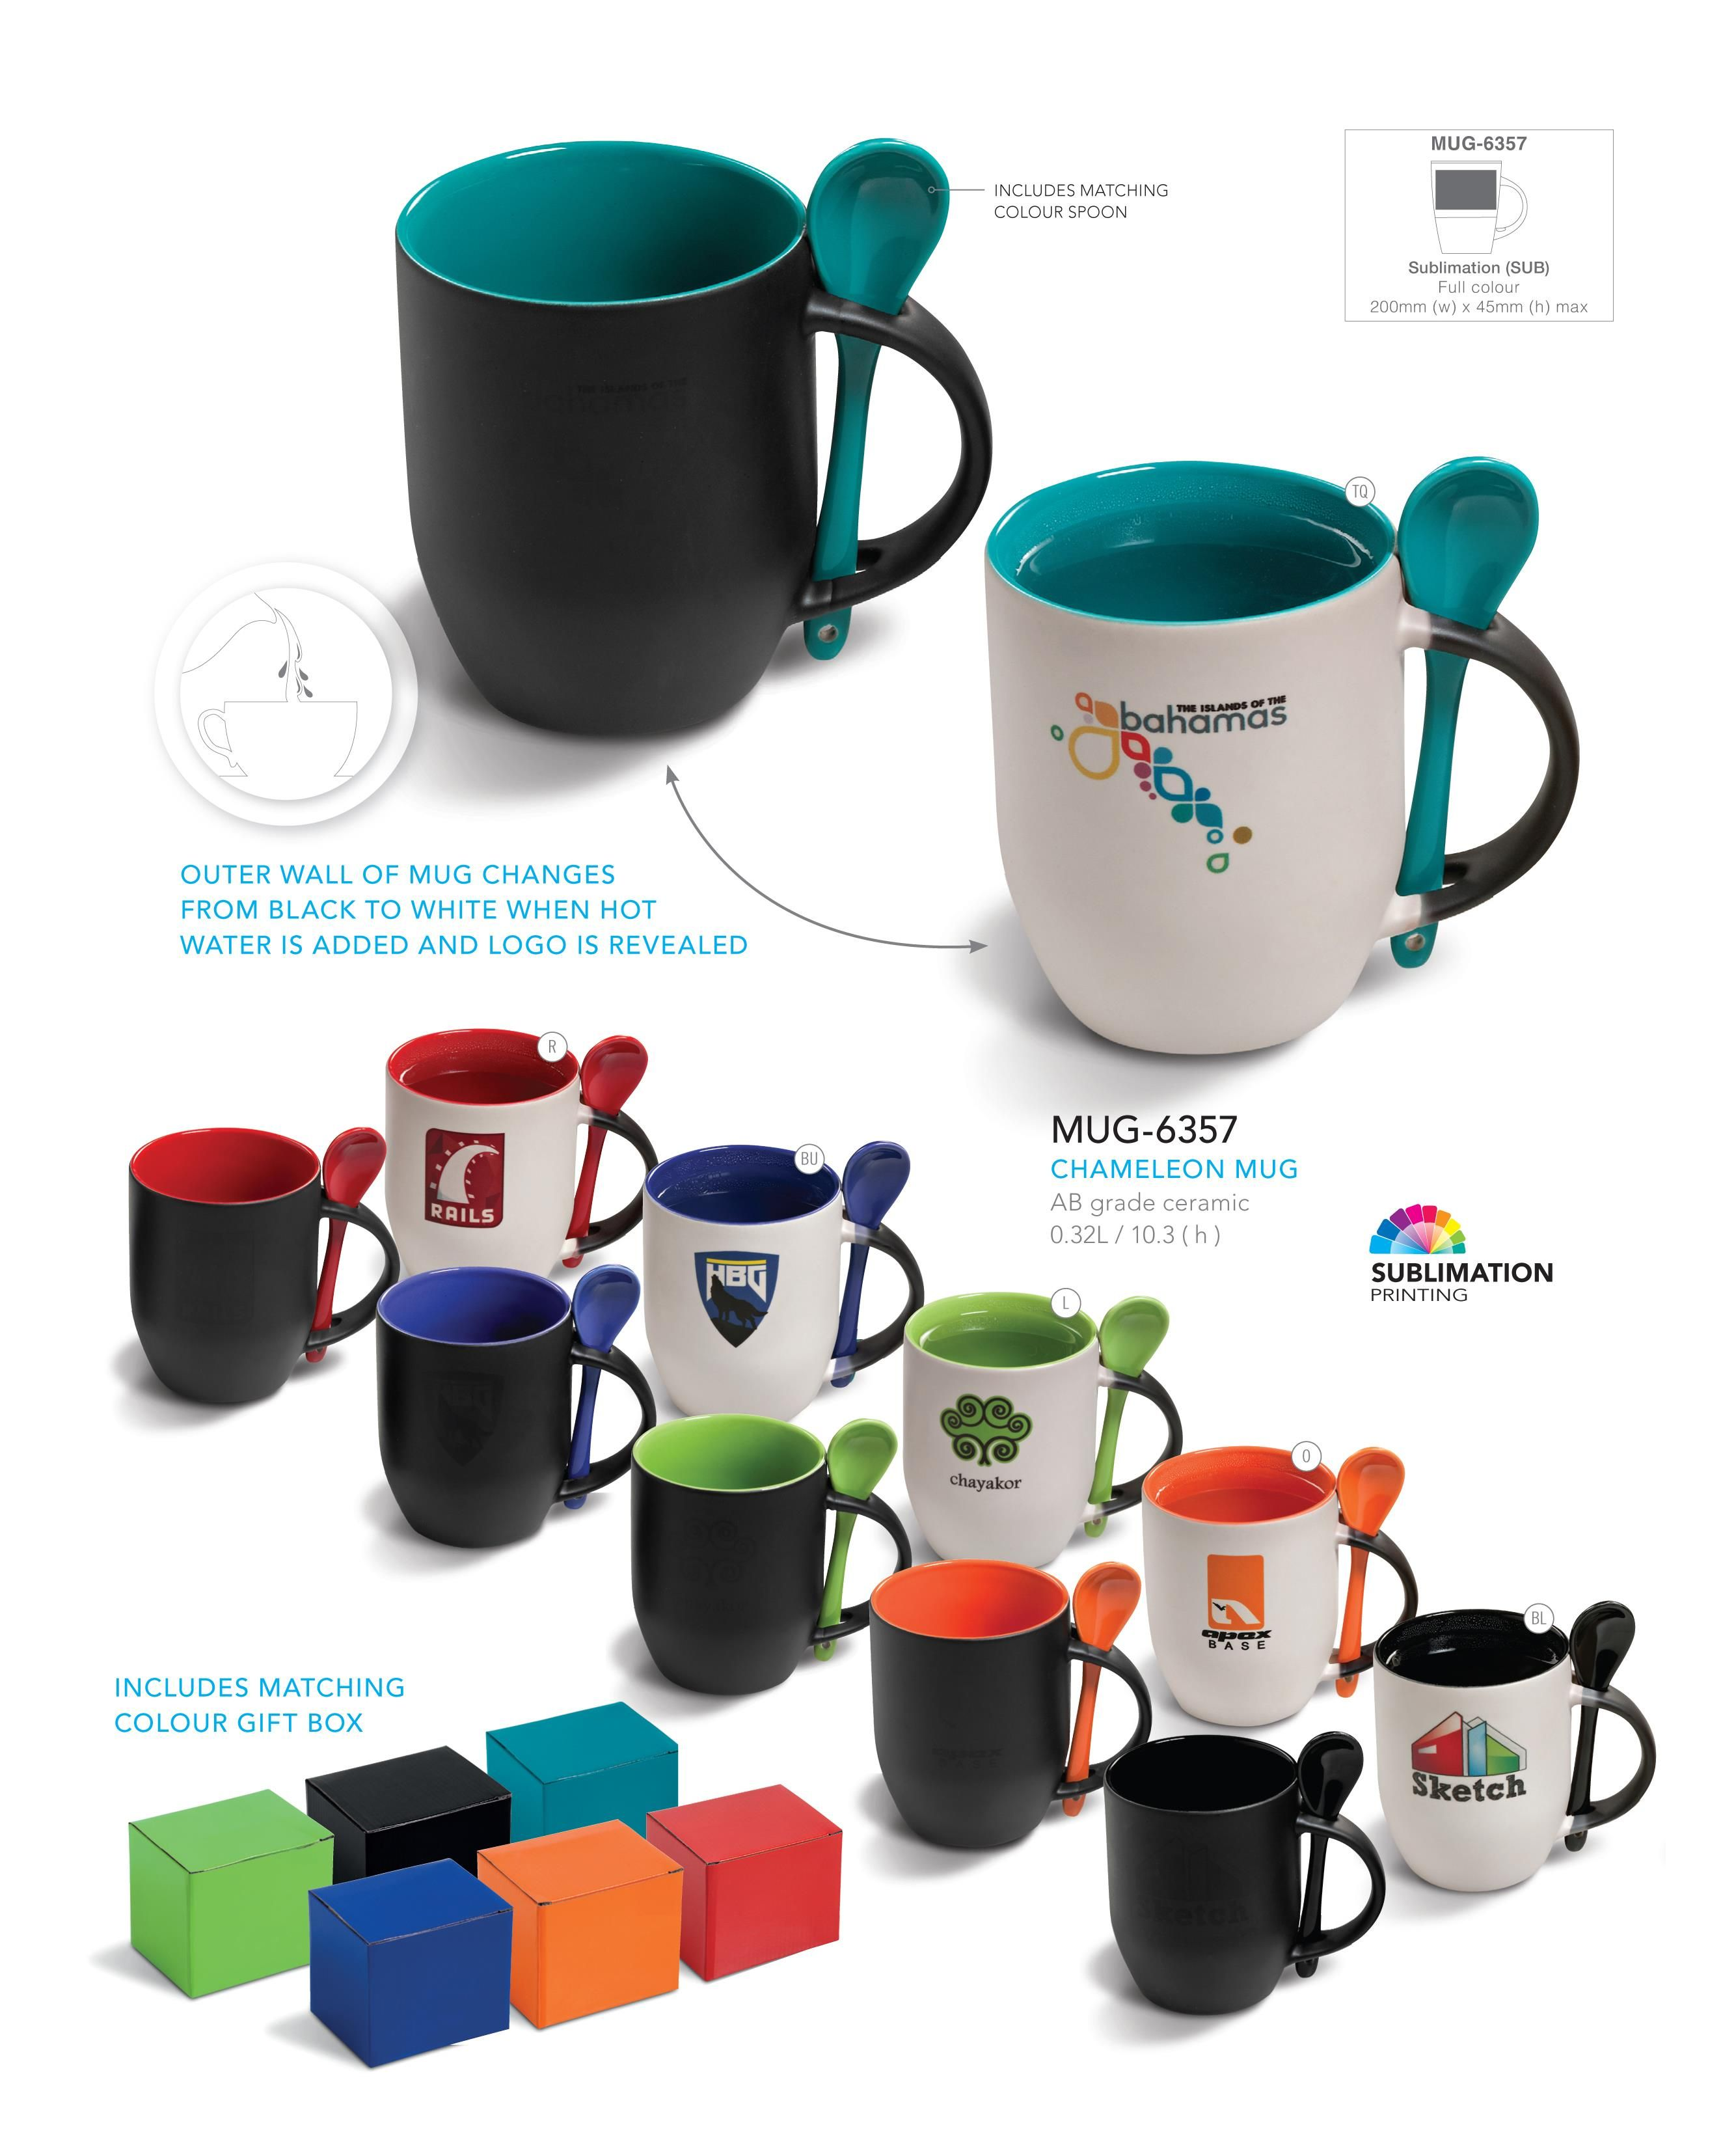 Chameleon Mug Corporate Gifts Drinkware on http//www